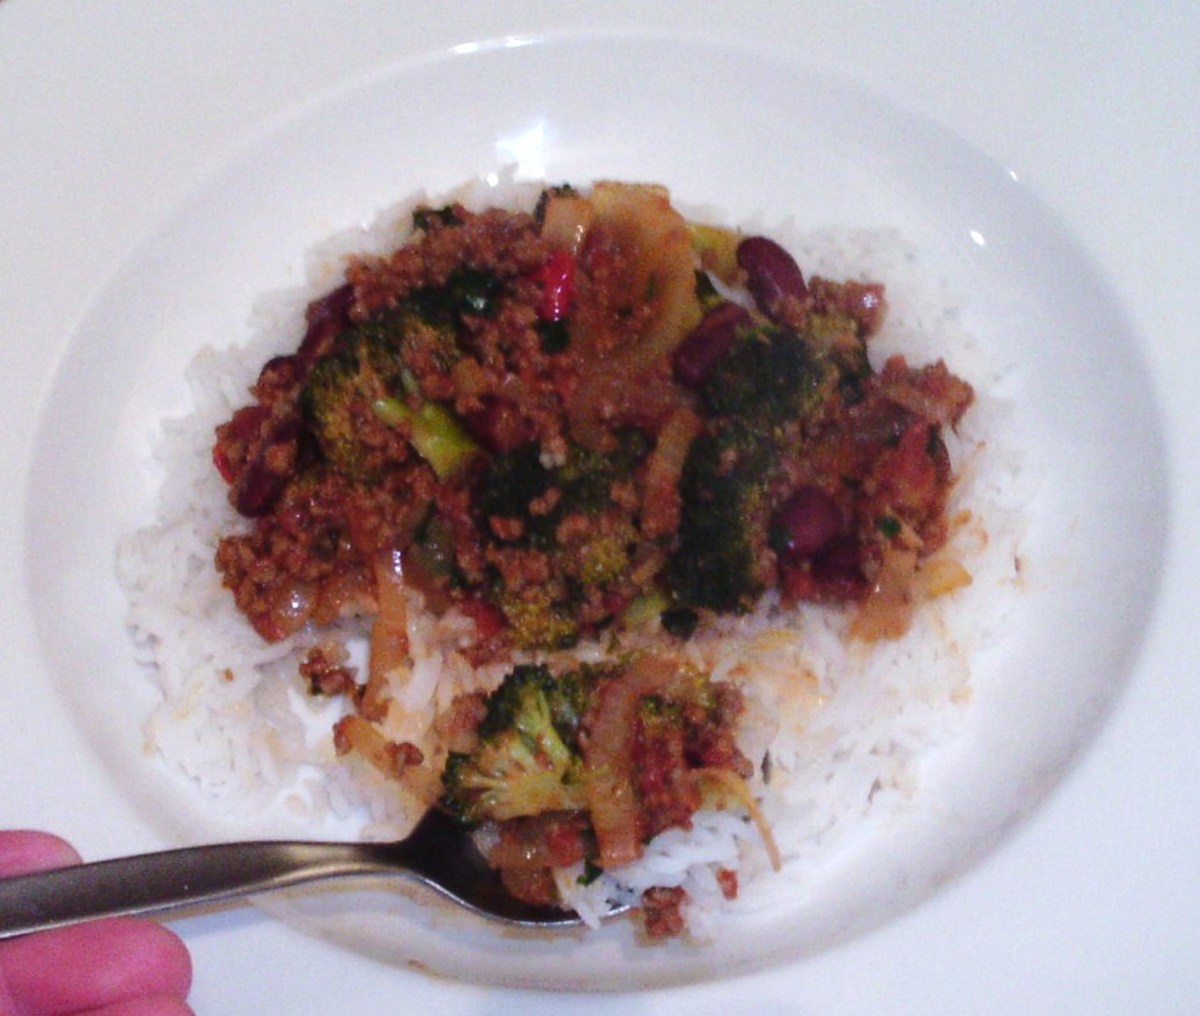 Tucking in to beef and broccoli chilli